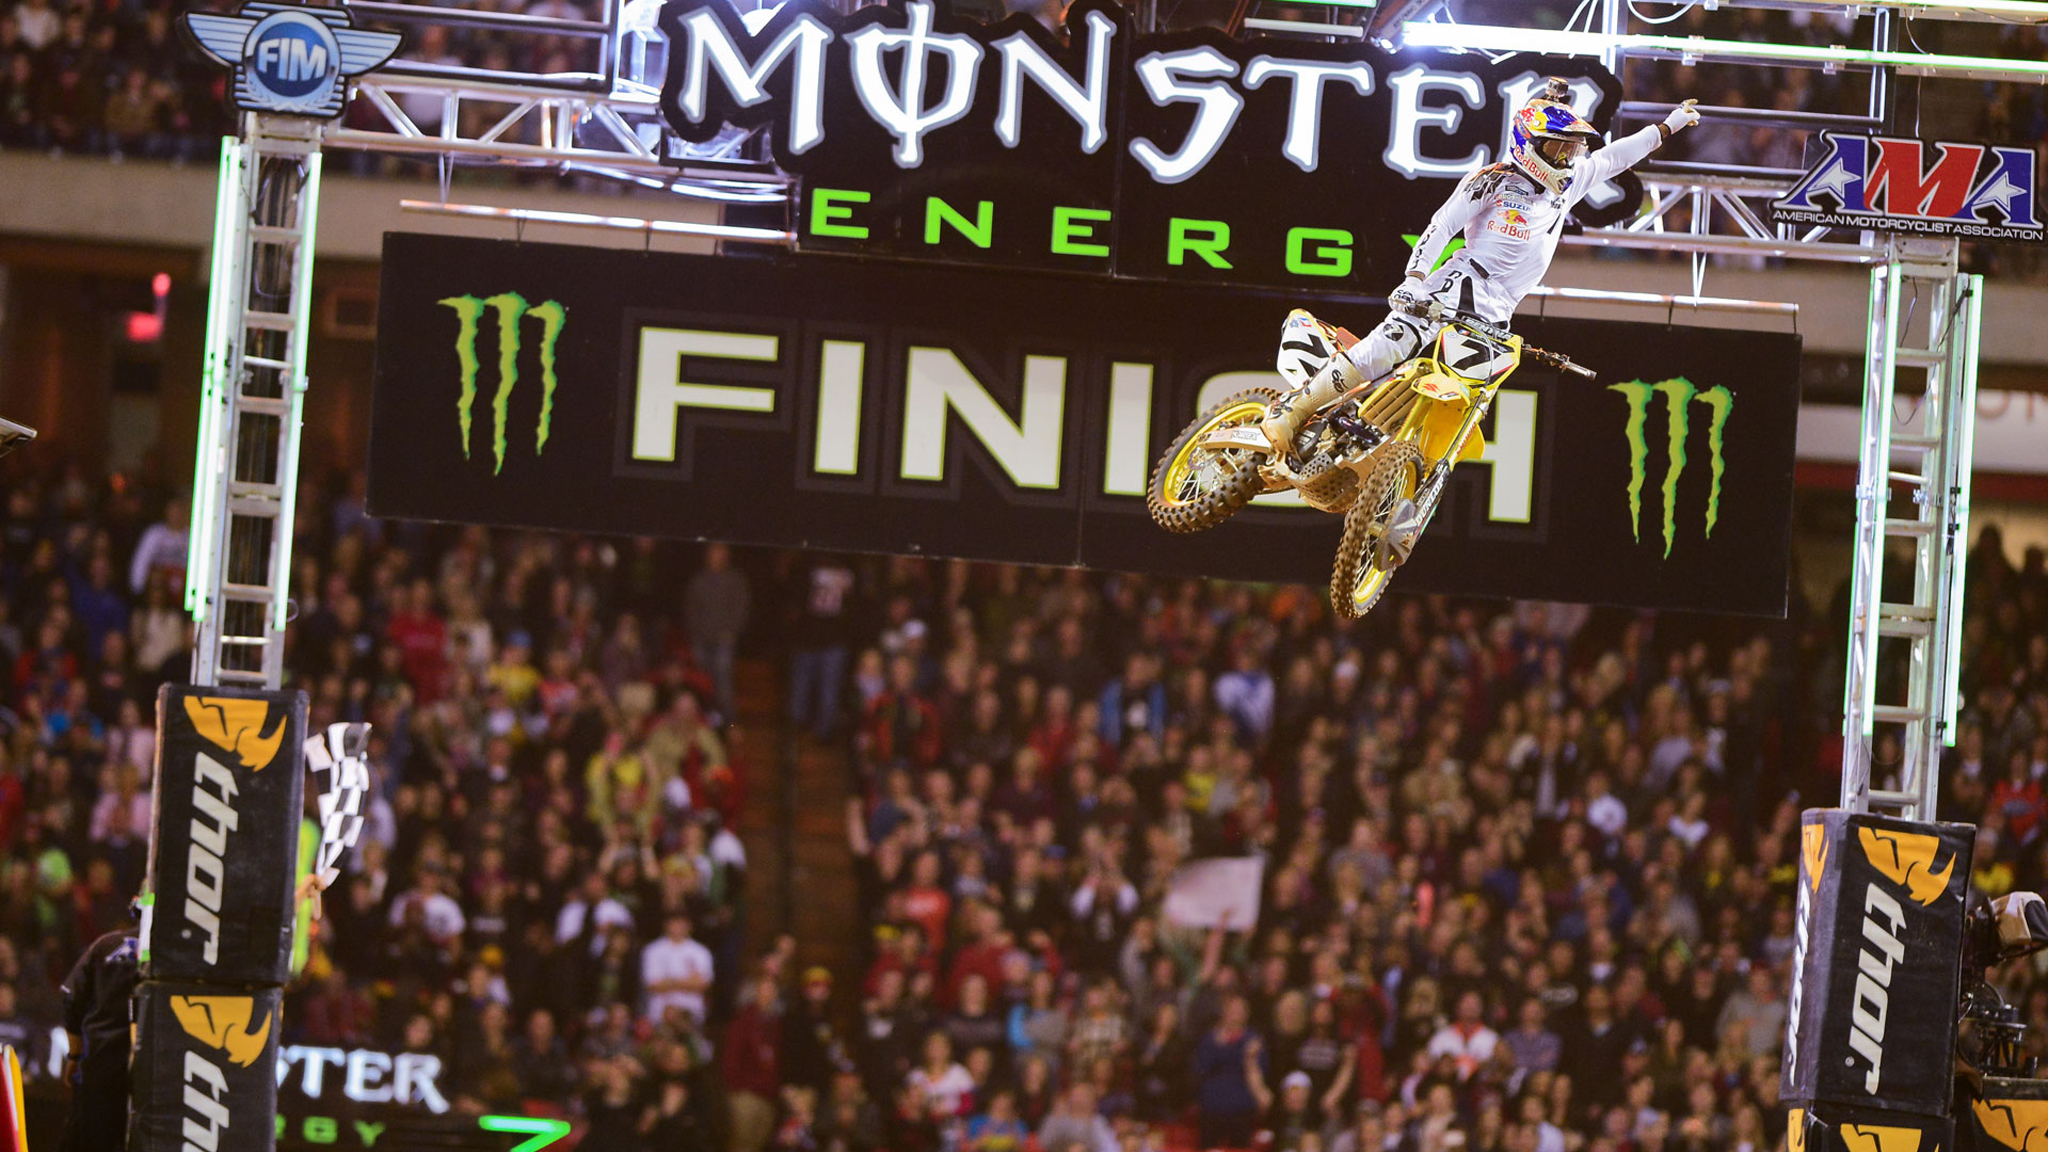 James Stewart raced to his first Supercross victory of the 2013 season in Atlanta.